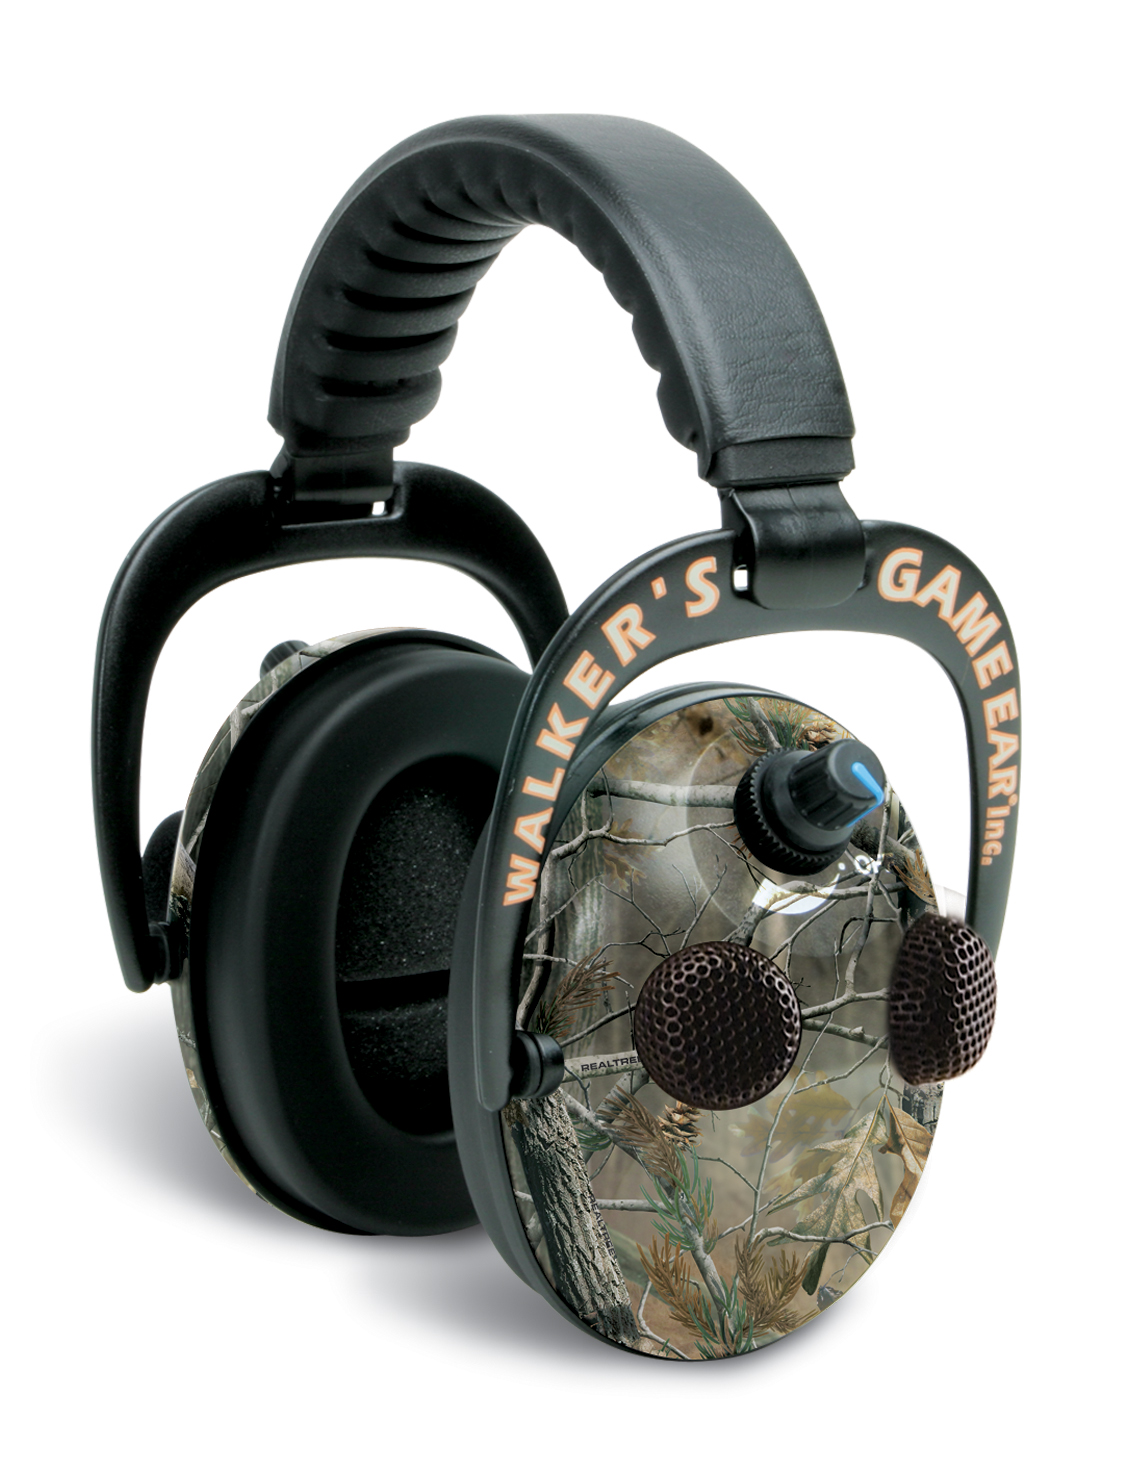 Game ear protection